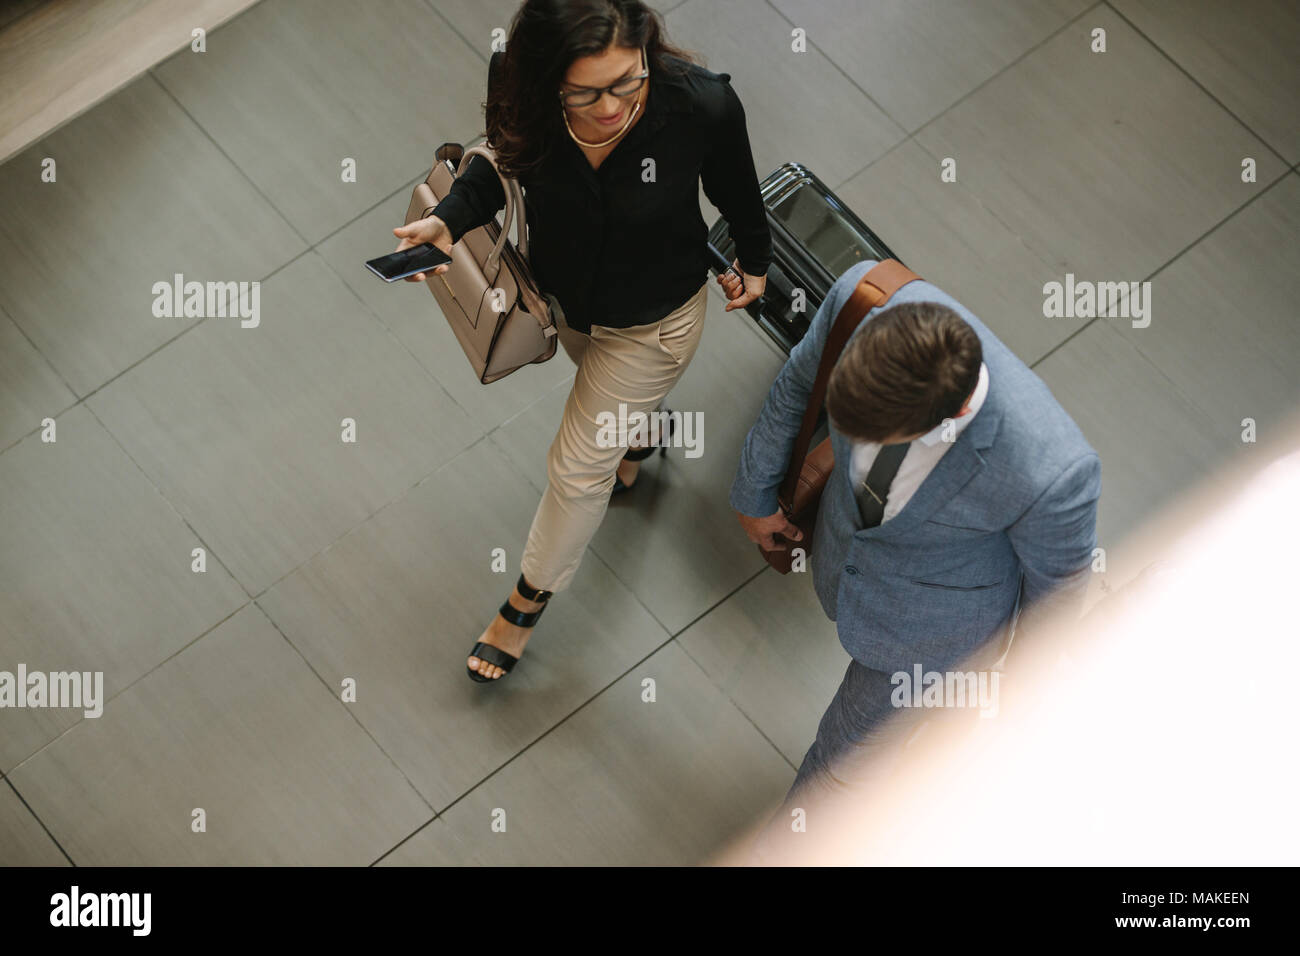 Top view of two business travelers walking together with luggage and chatting. Business people arriving for a conference. - Stock Image